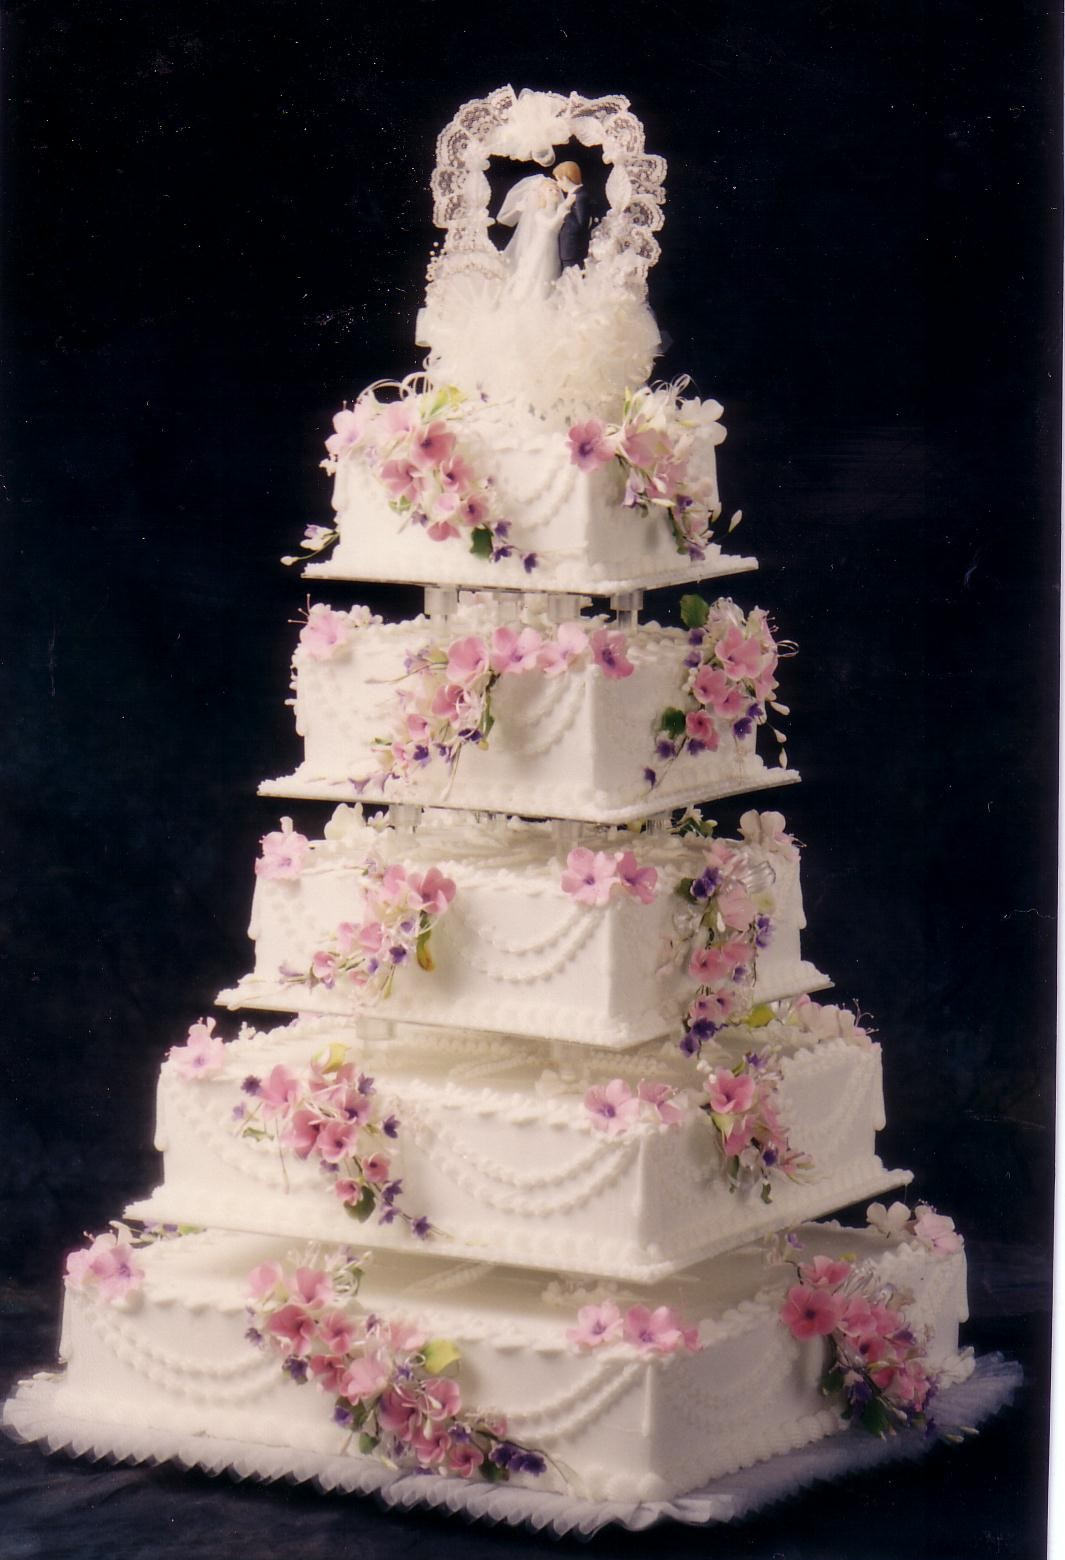 Cake Place 5 Tier White Square Wedding Cake With Pink Flowers